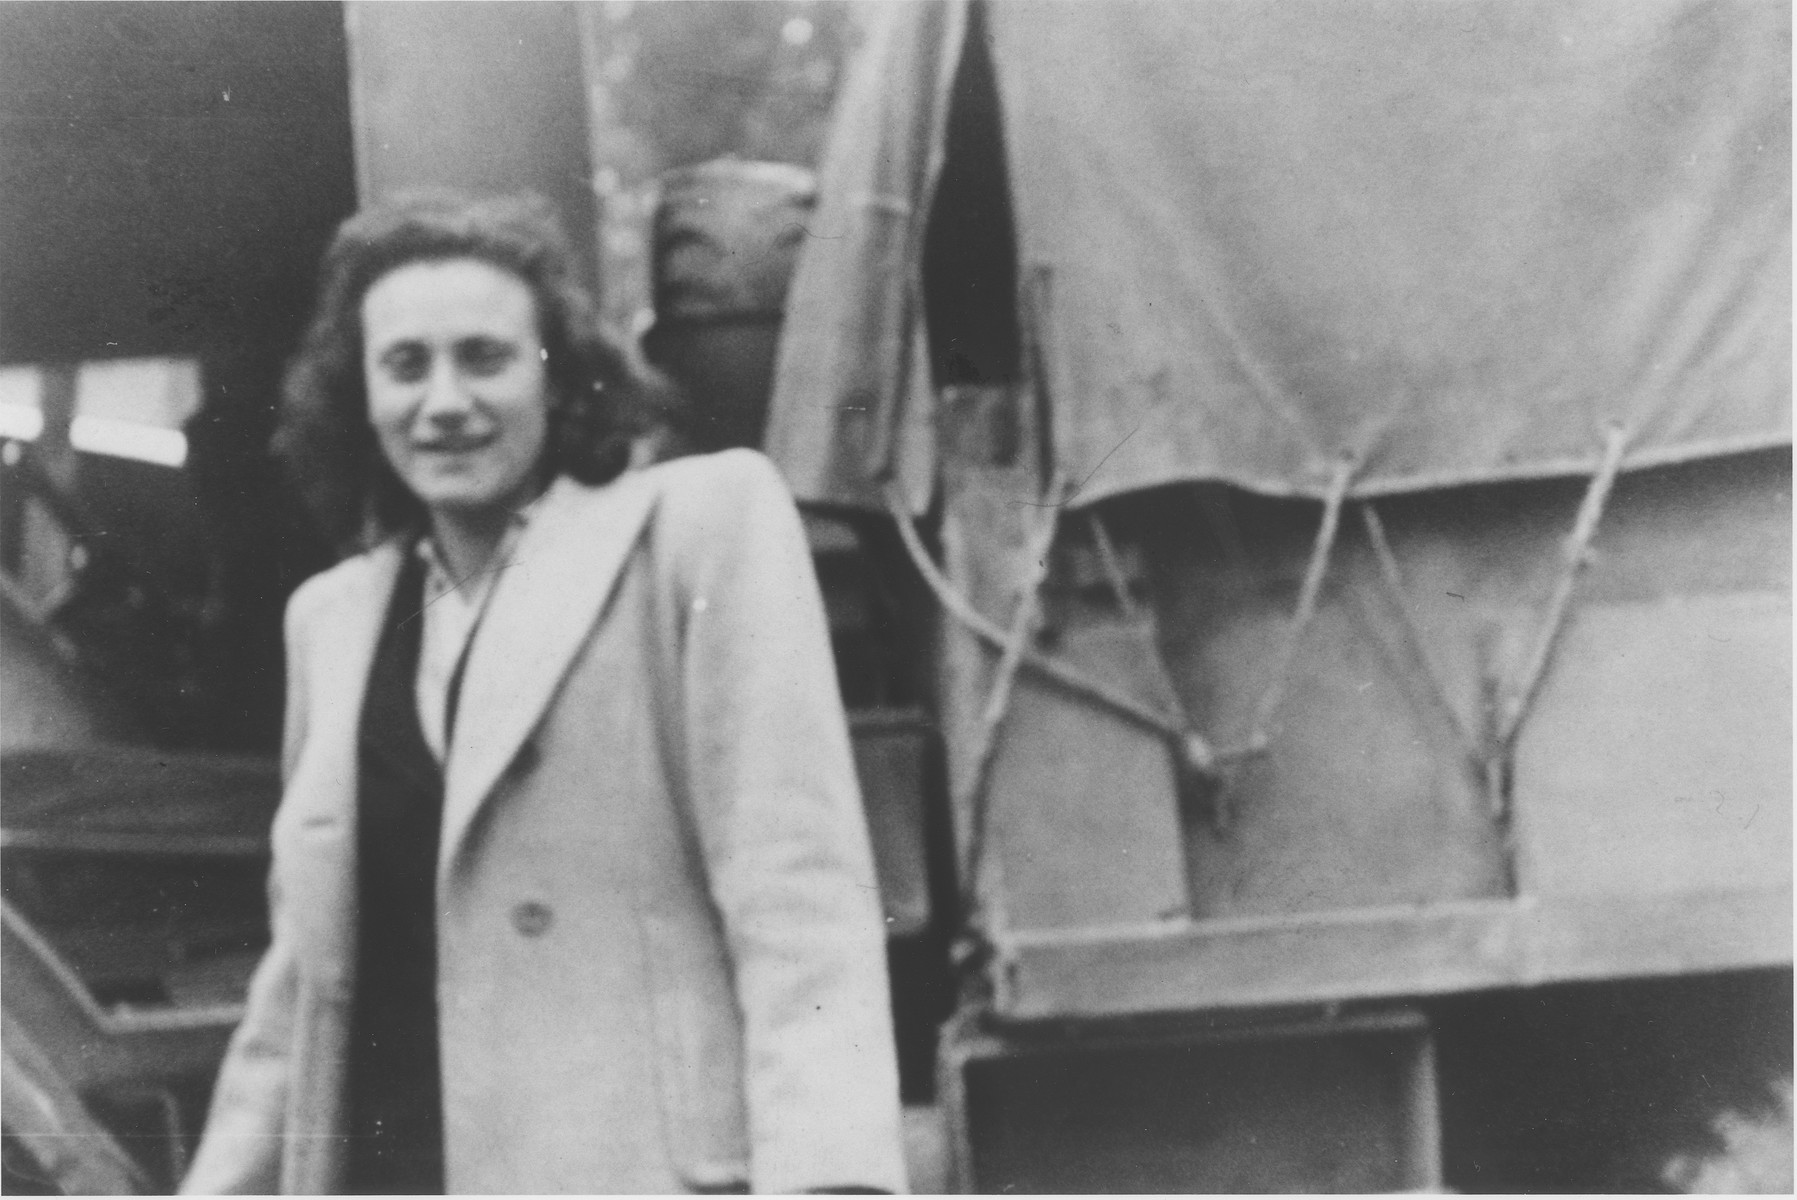 A female Bricha guide stands by a truck waiting to collect would-be Jewish immigrants to Palestine from the Hochland displaced camp and transport them to the French coast, where they will board illegal immigrant ships.